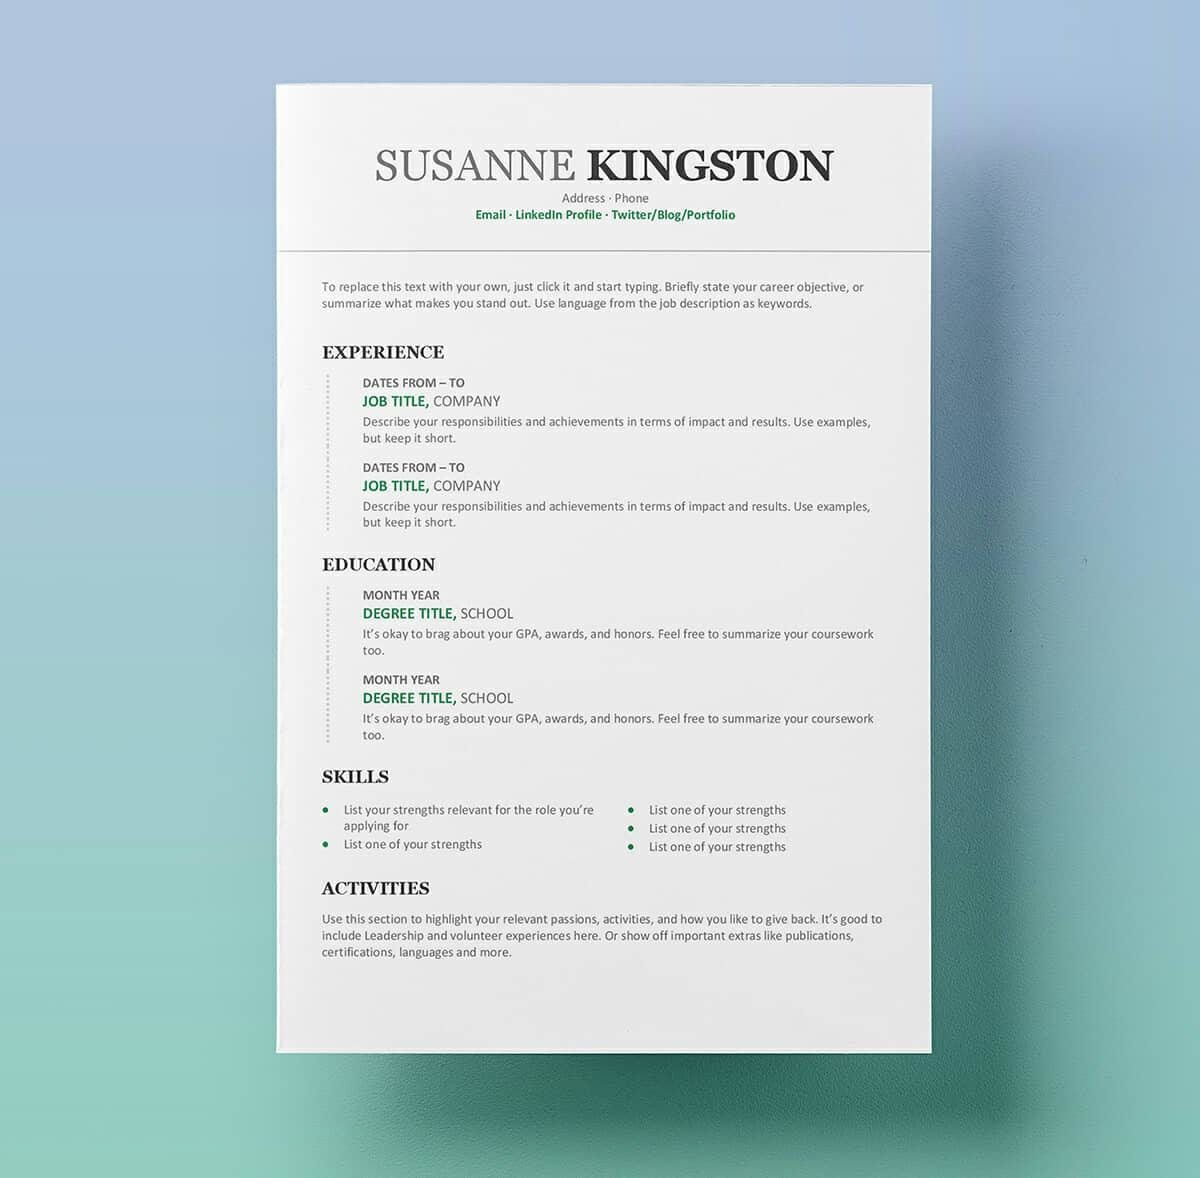 008 Outstanding Free M Word Resume Template Photo  Templates 50 Microsoft For Download 2019Full